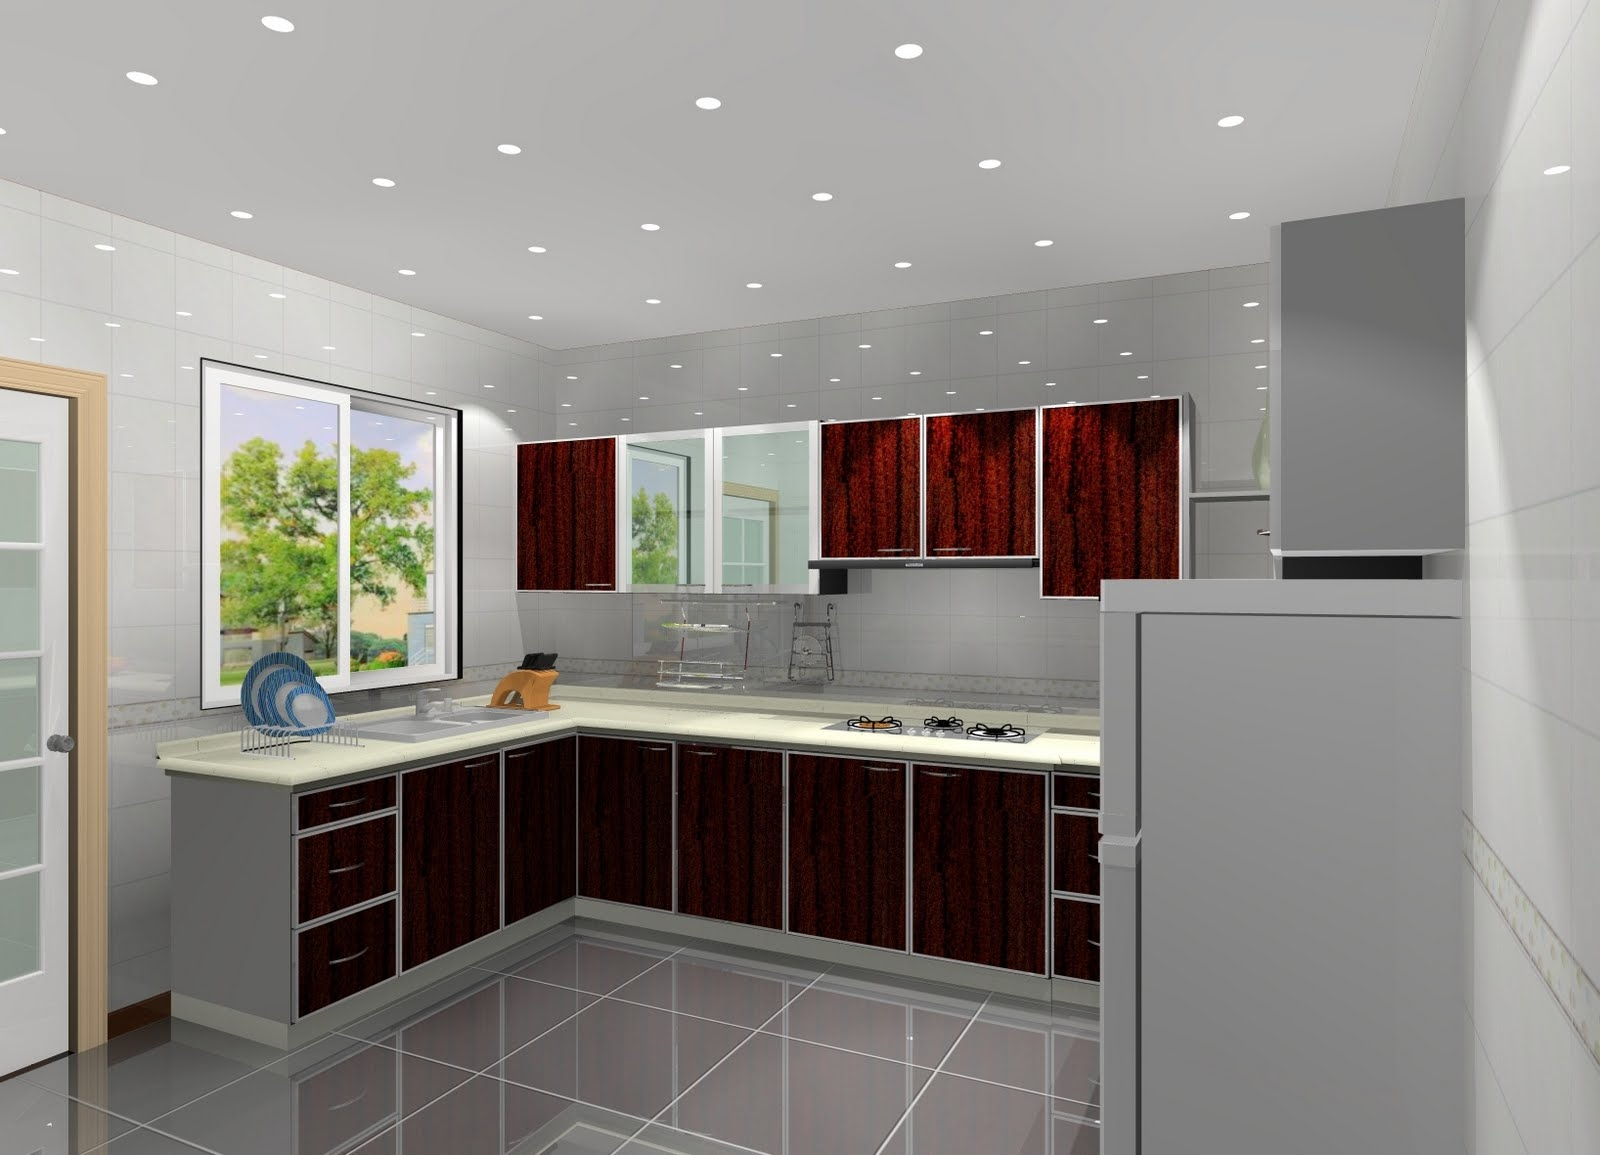 Kitchen Design Cabinets To Ceilingkitchen cabinet best finish for kitchen cabinets kitchen